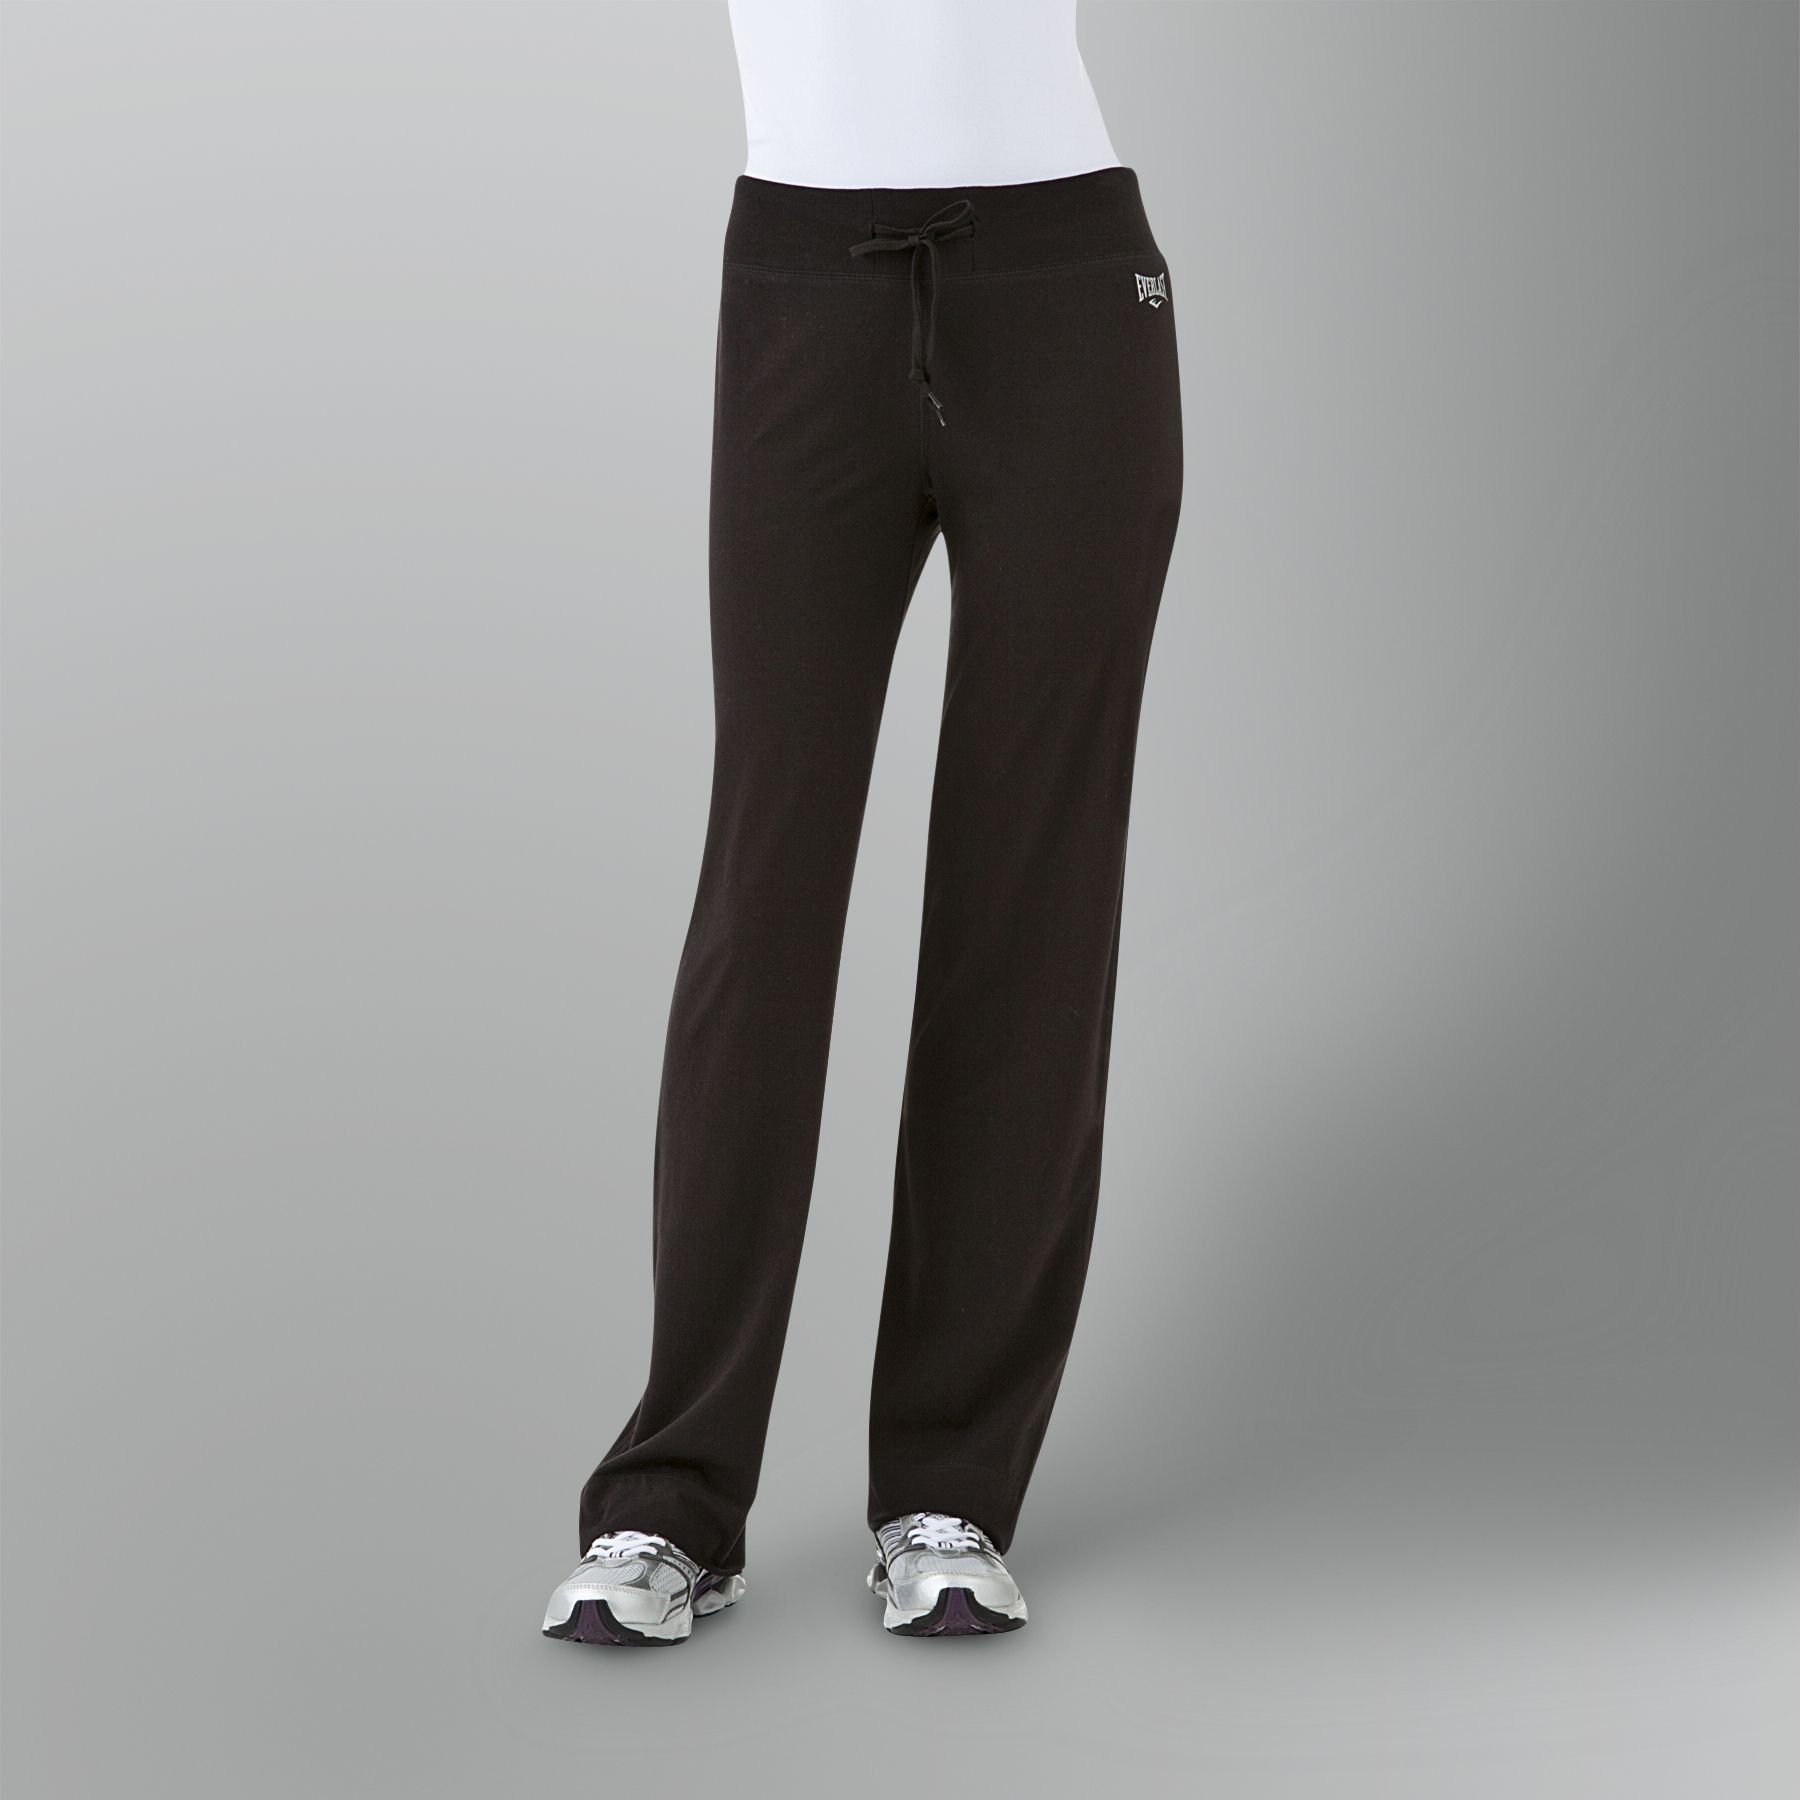 Everlast® Women's Stretch-Knit Lounge Pants at Sears.com